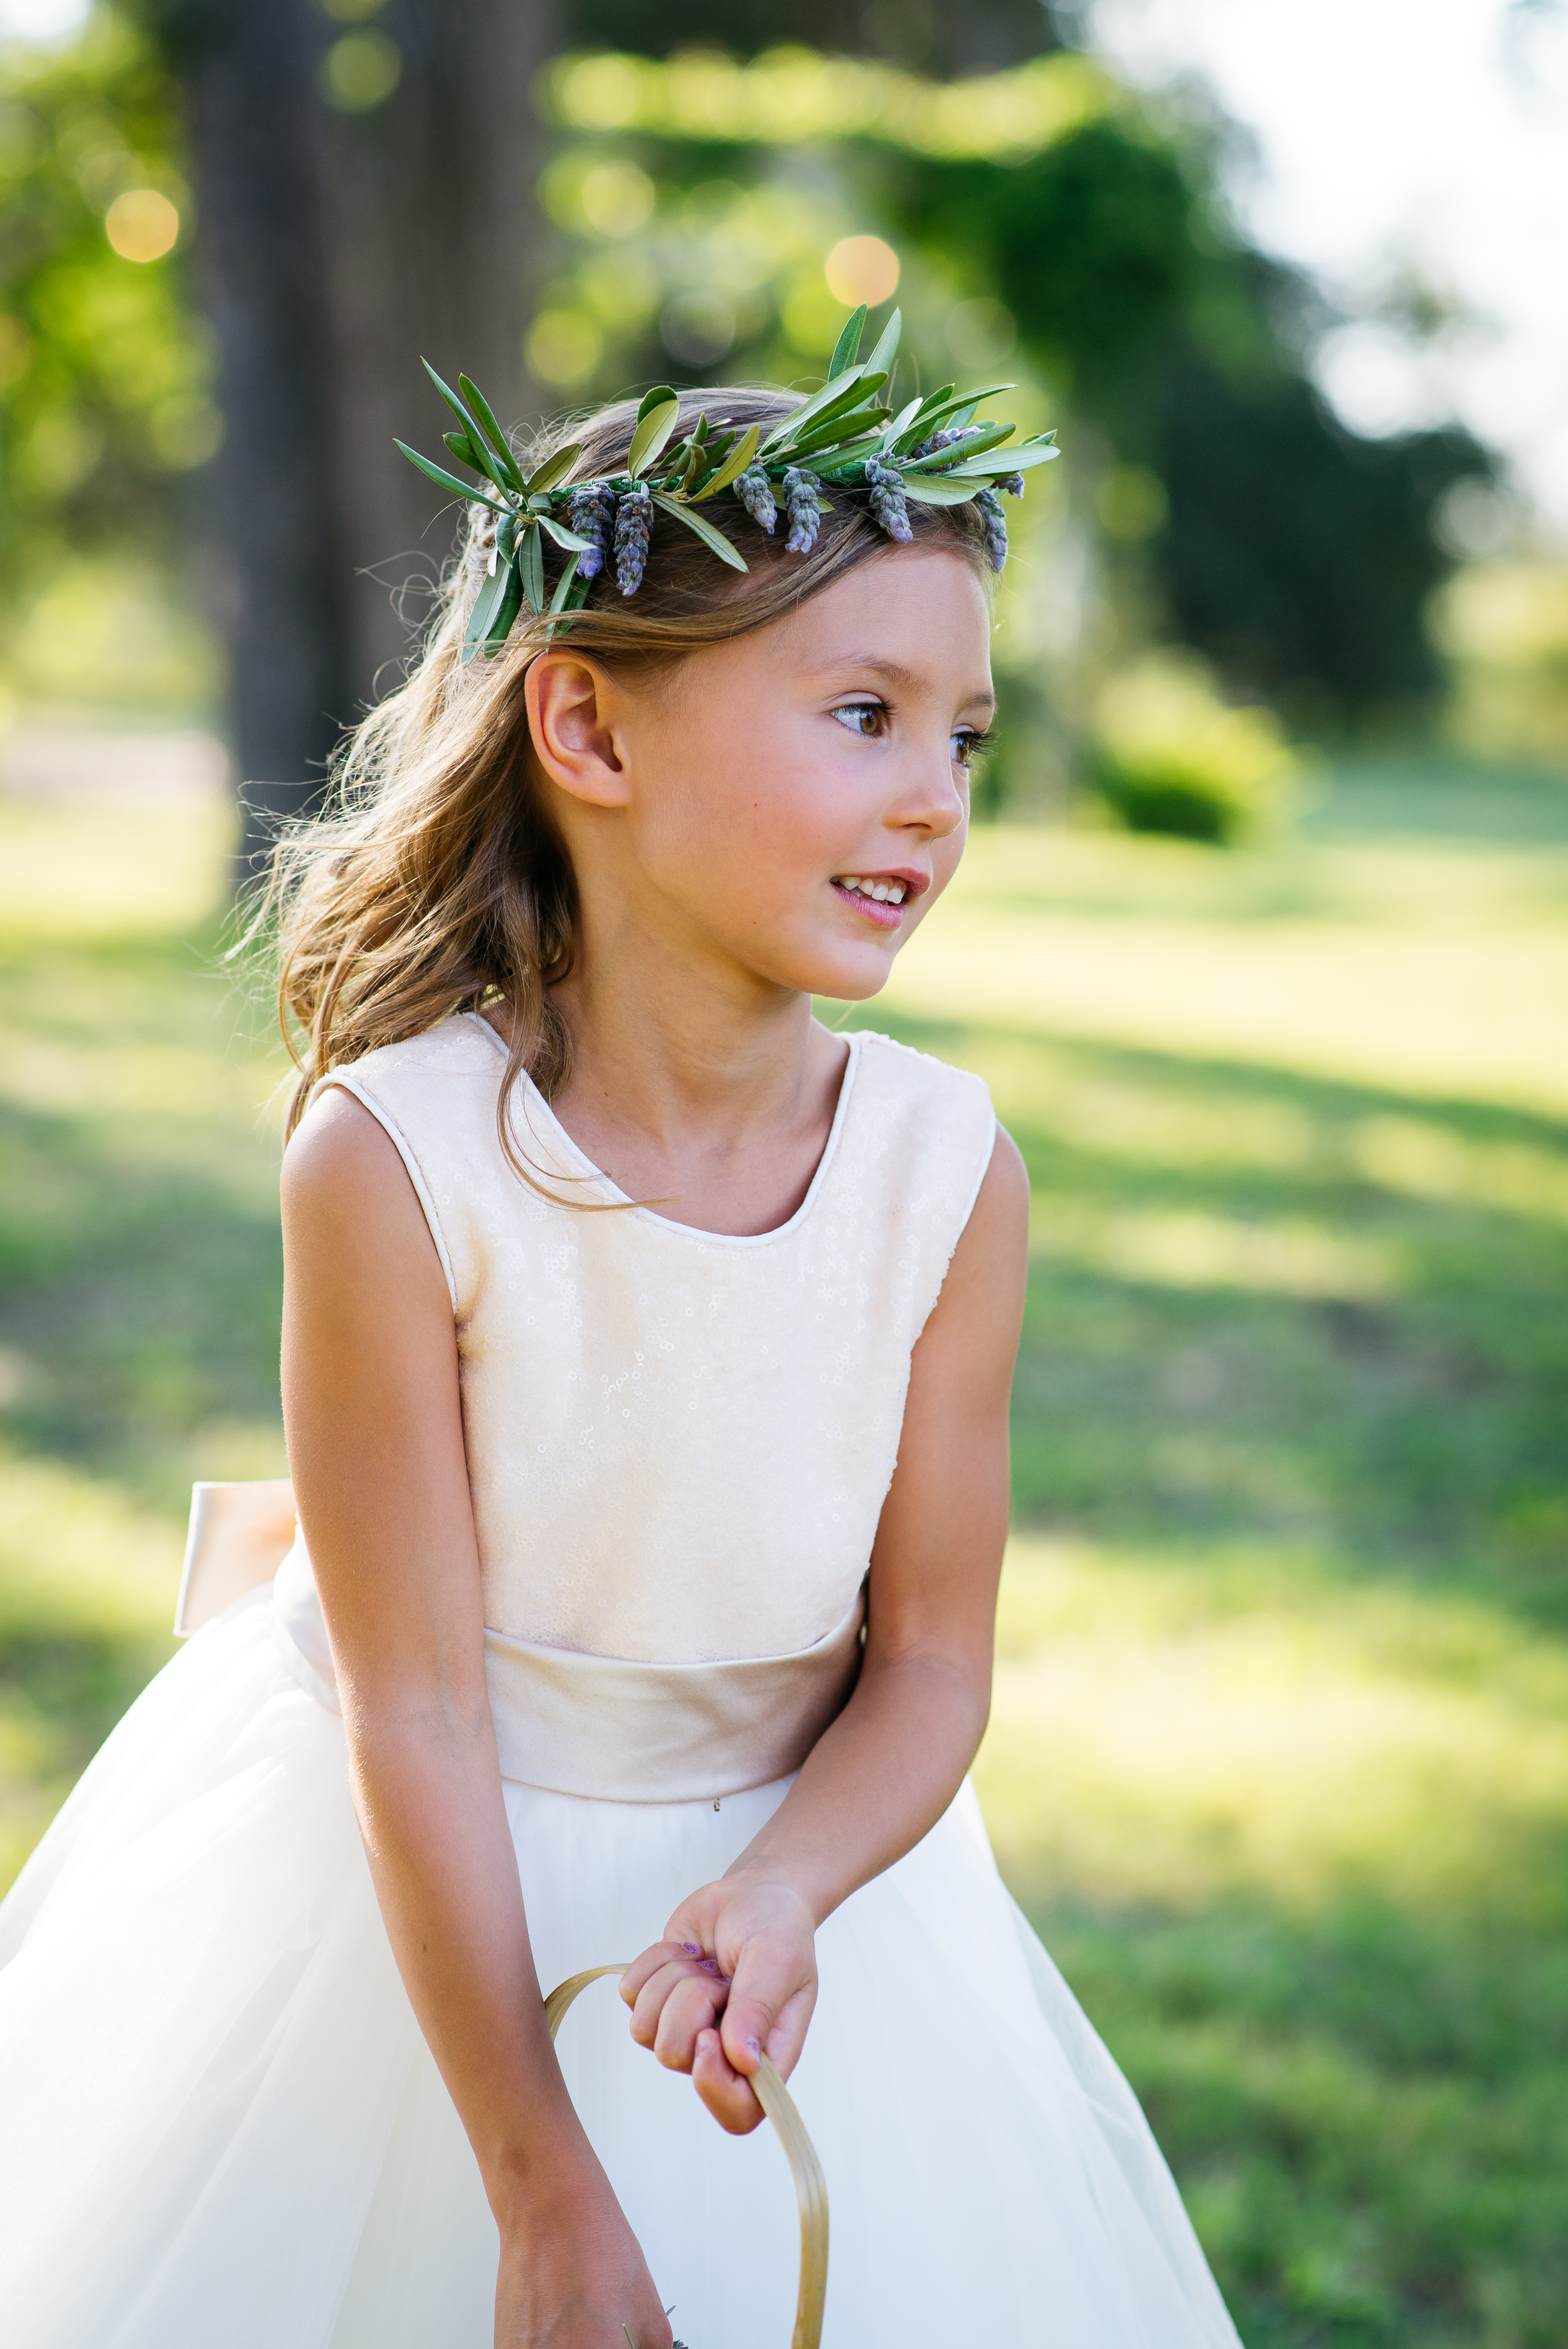 Our beautiful flower girl neice